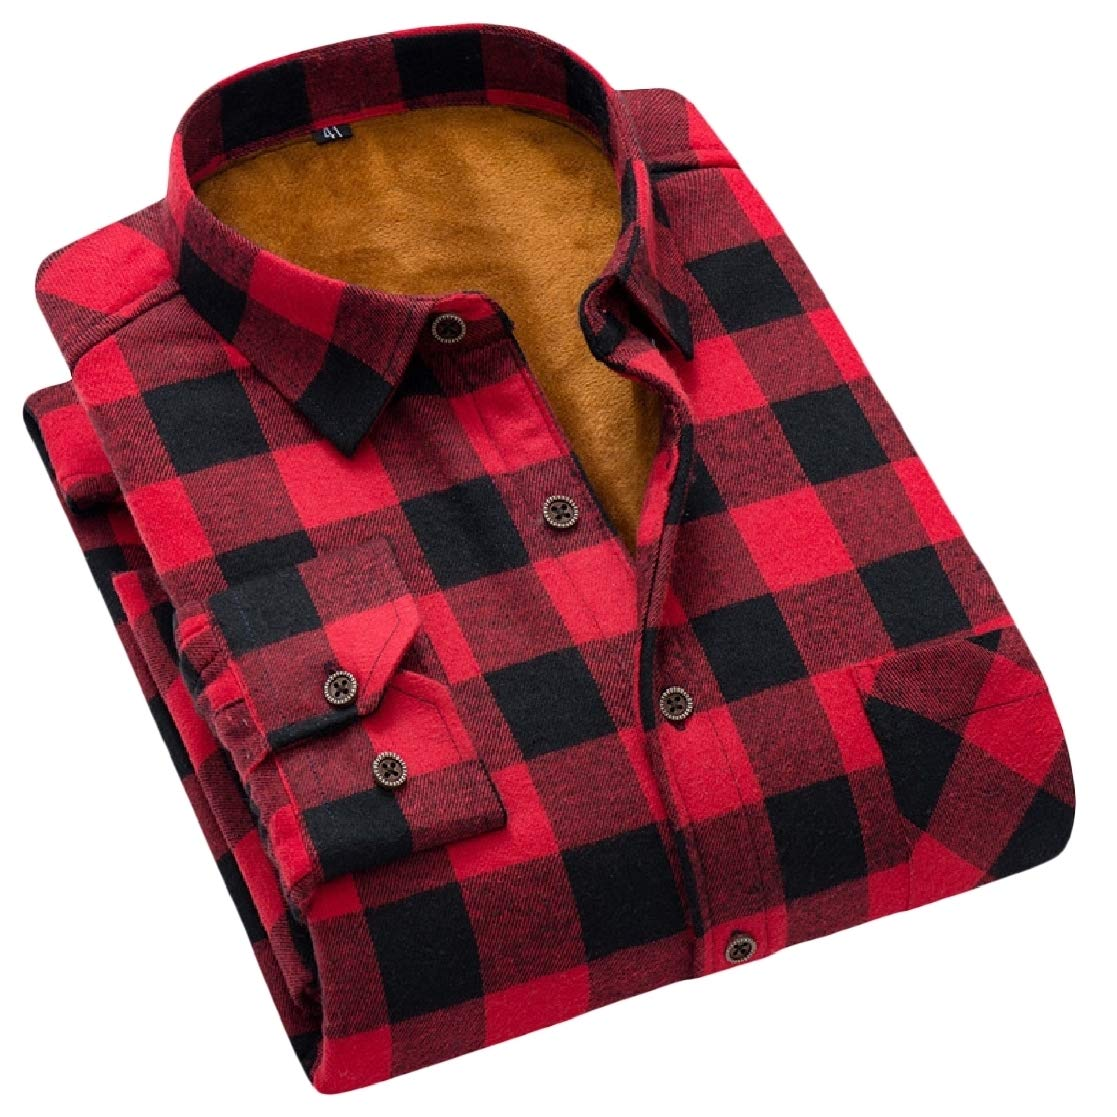 YUNY Mens Thick Plus Velvet Keep Warm Japanese Fit Long-Sleeve Plaid Pattern Shirts AS4 2XL